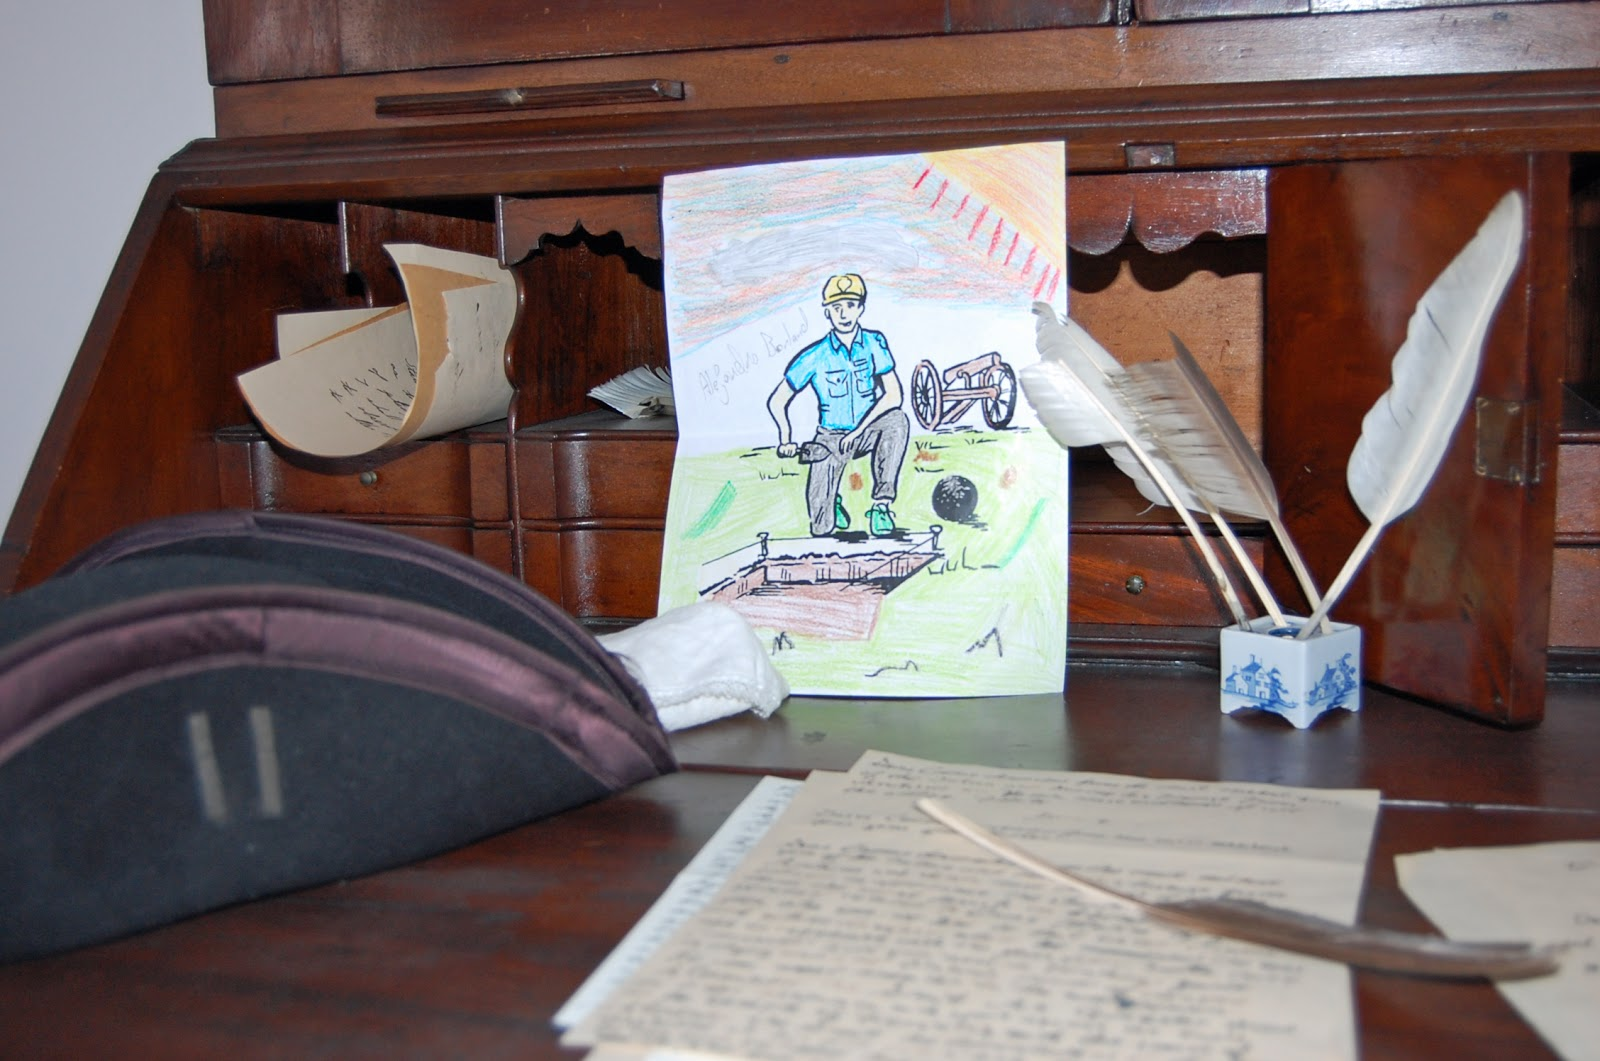 Flat Ranger Borland spent some time in the Ford Mansion arranging and  #633A2F